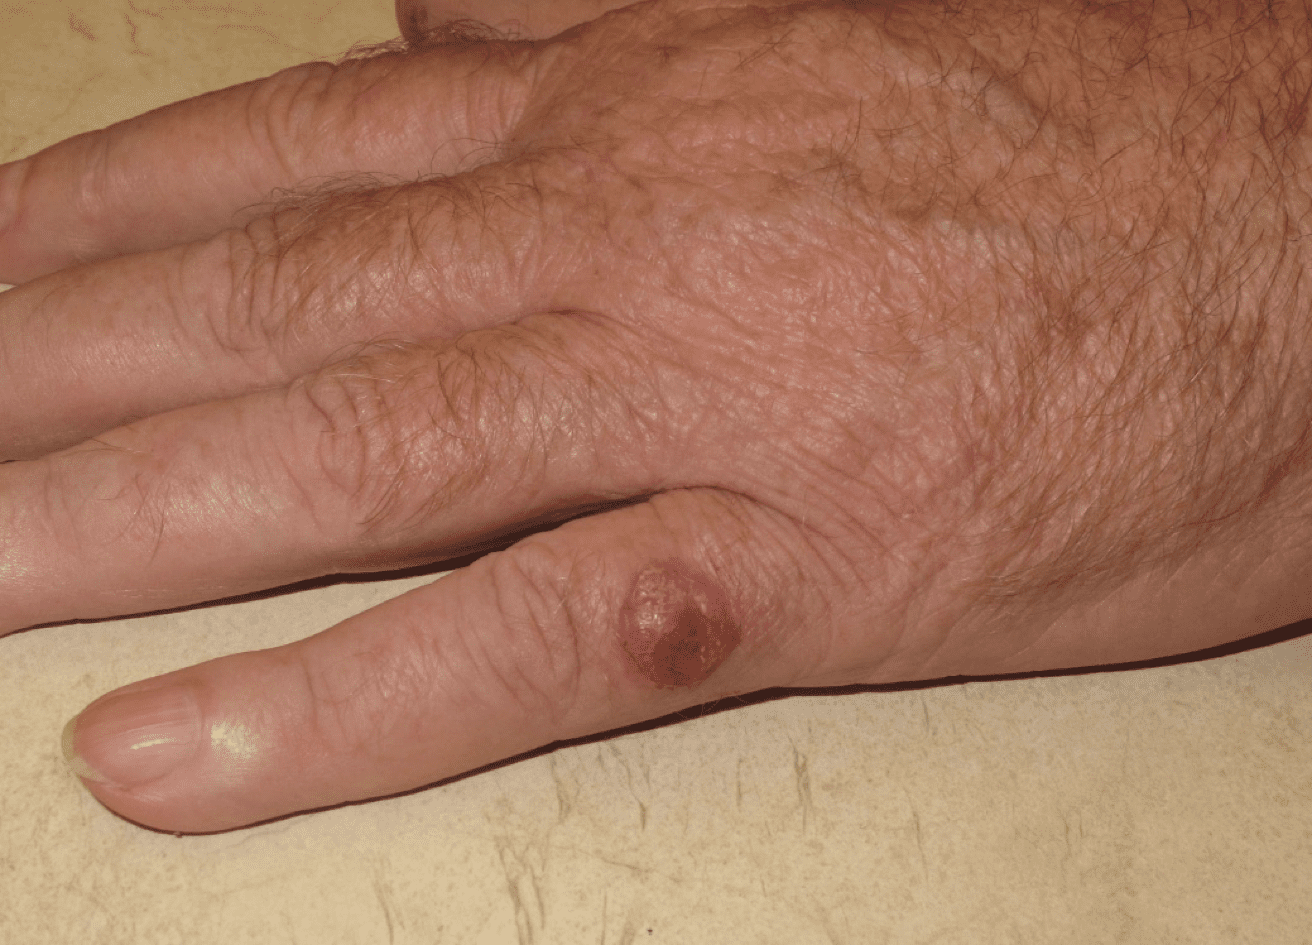 Picture of a Merkel cell carcinoma arising on the fifth digit of the left hand.